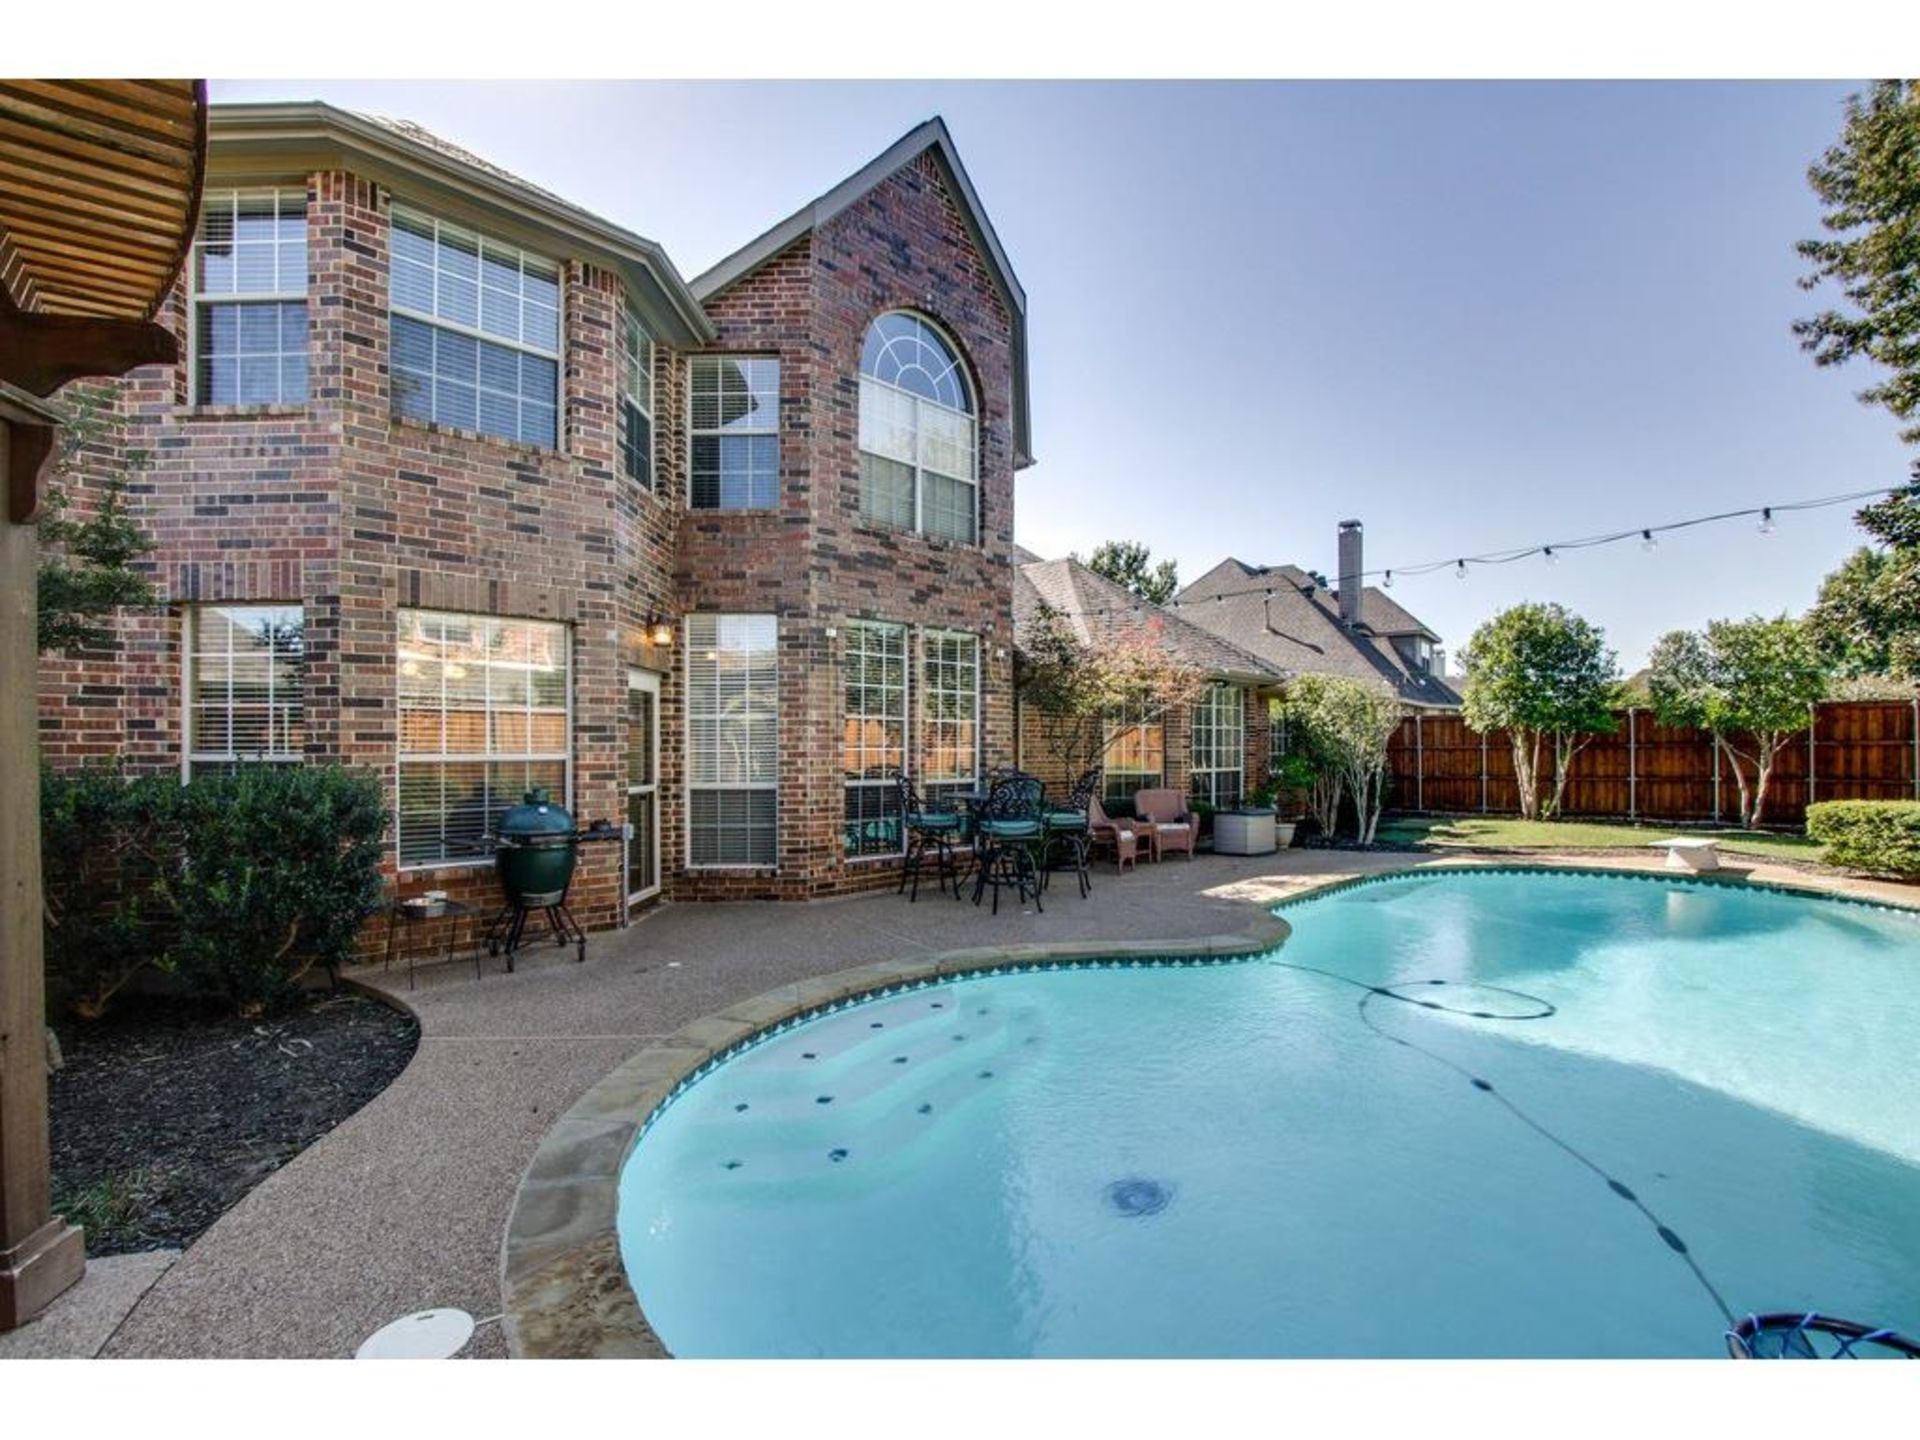 OPEN HOUSE IN CARROLLTON